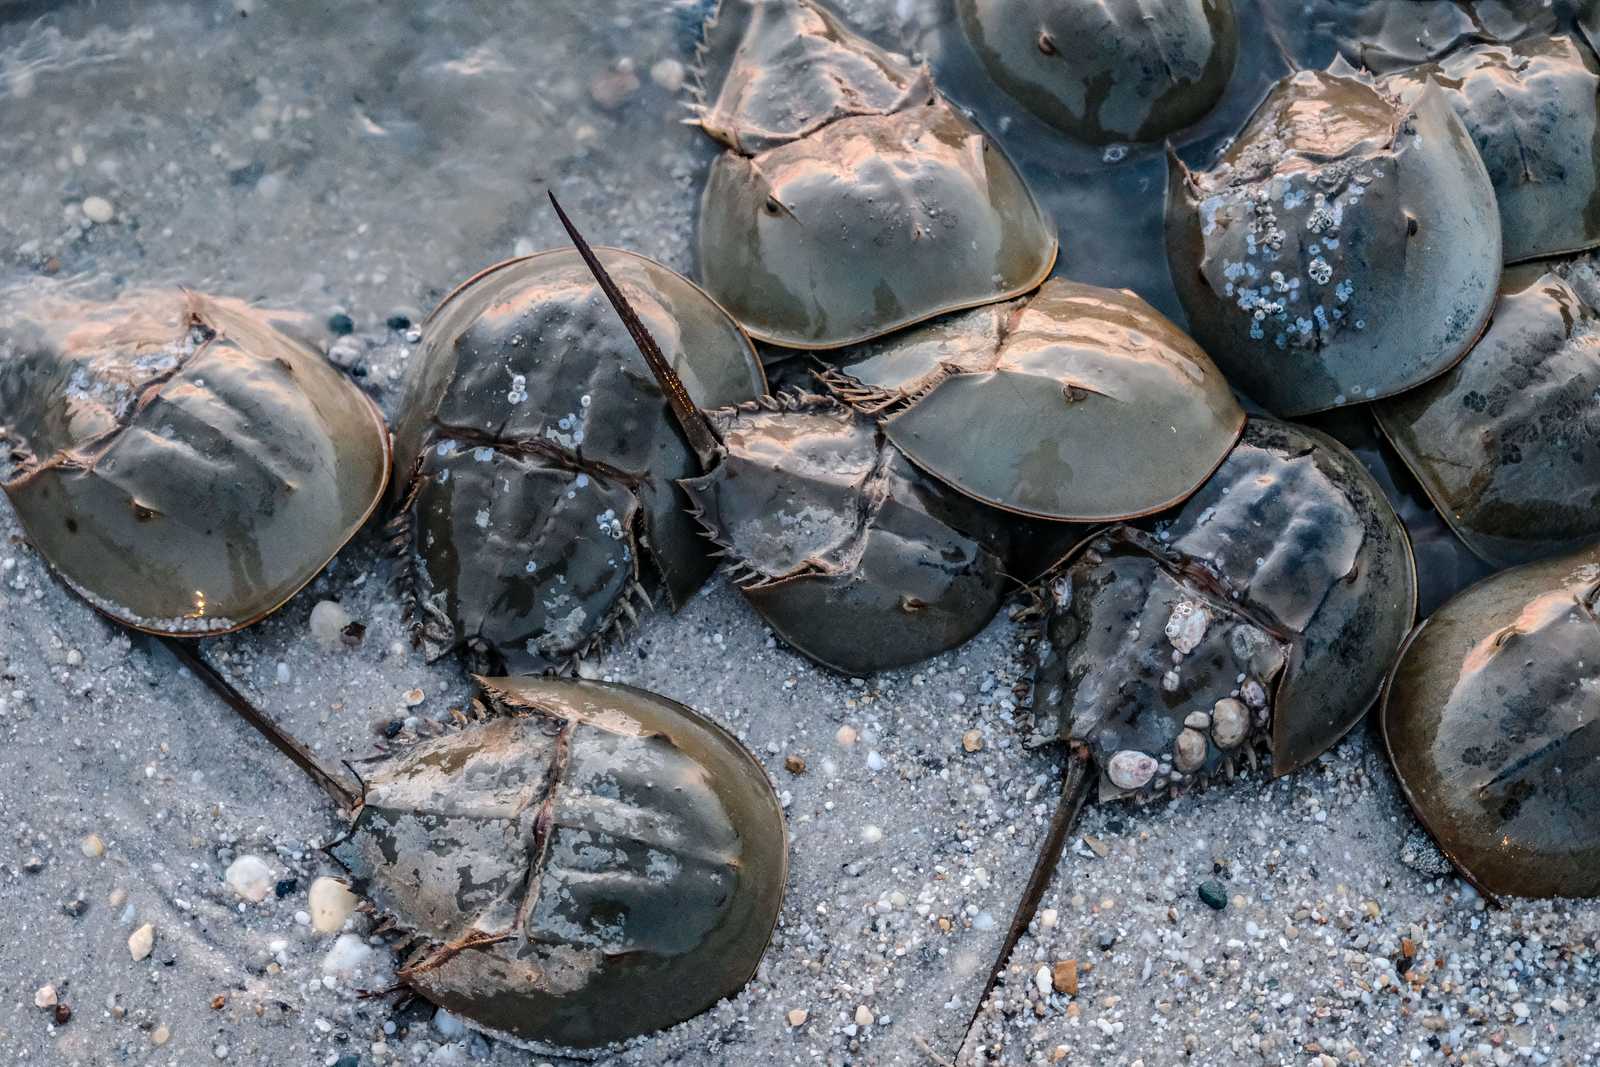 Horseshoe crabs populate Pickering Beach along the Delaware Bay during the 2019 spawning season. The Delaware Bay is home to the largest spawning horseshoe crab population in the world. (Alex Wroblewski)